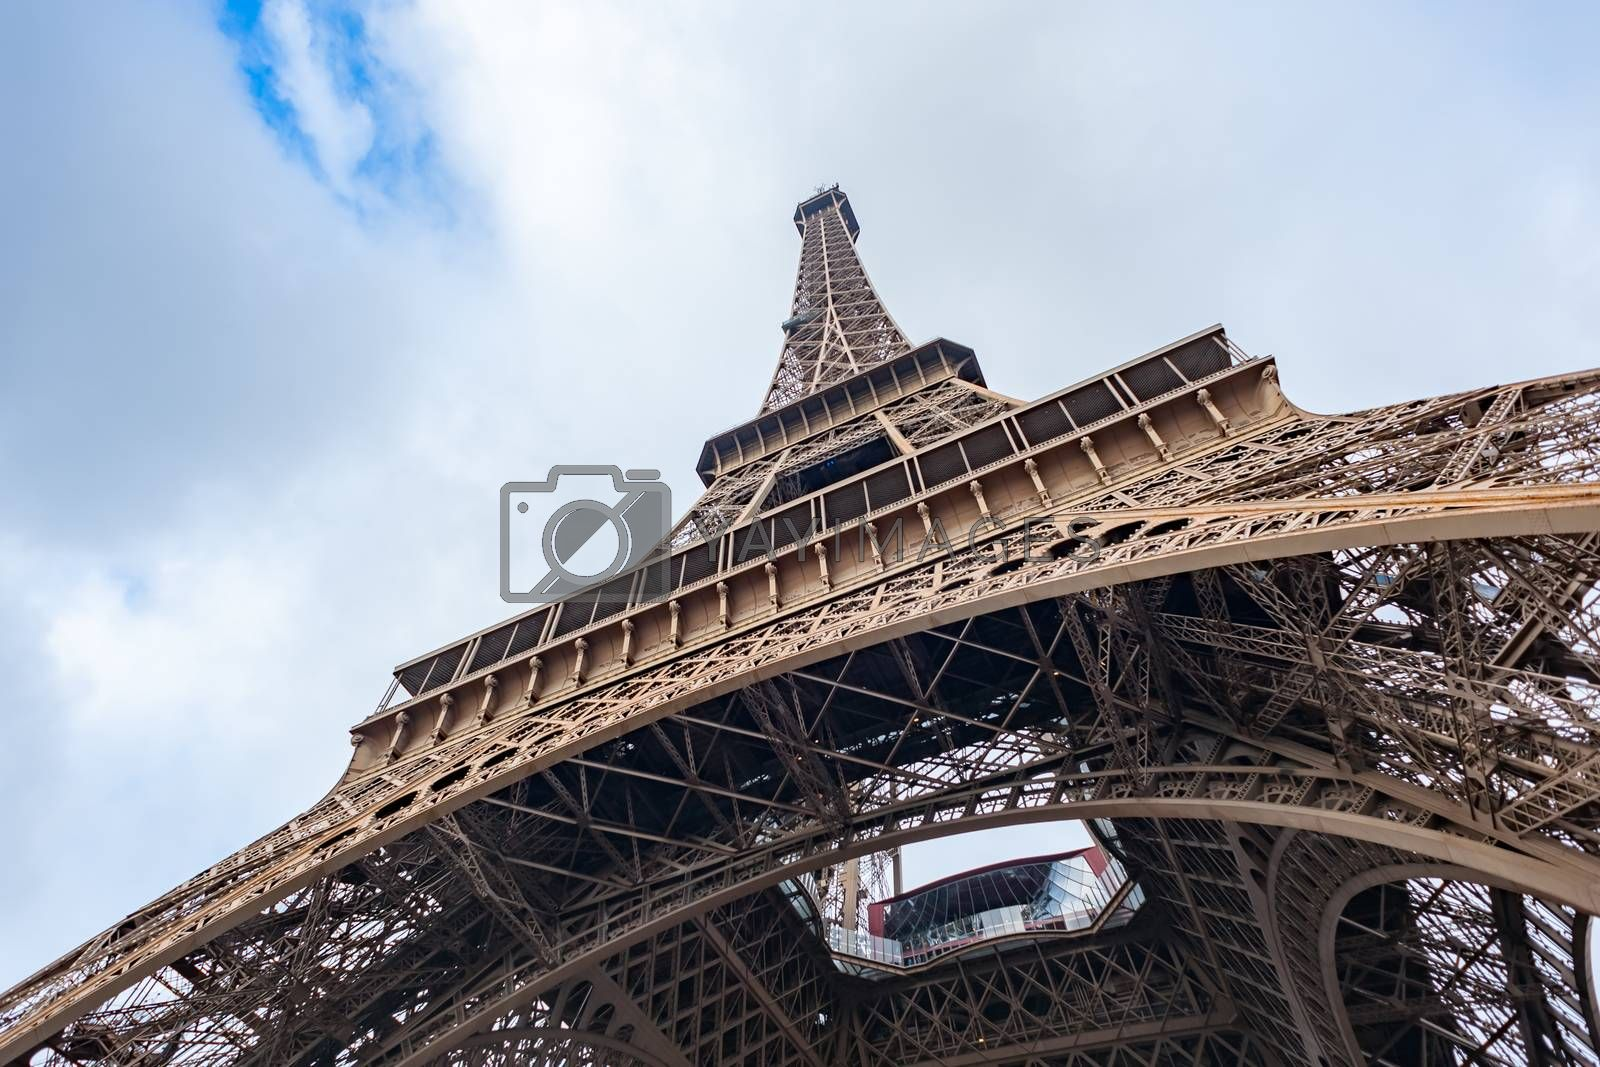 Eiffel tower low wide angle view in Paris, France